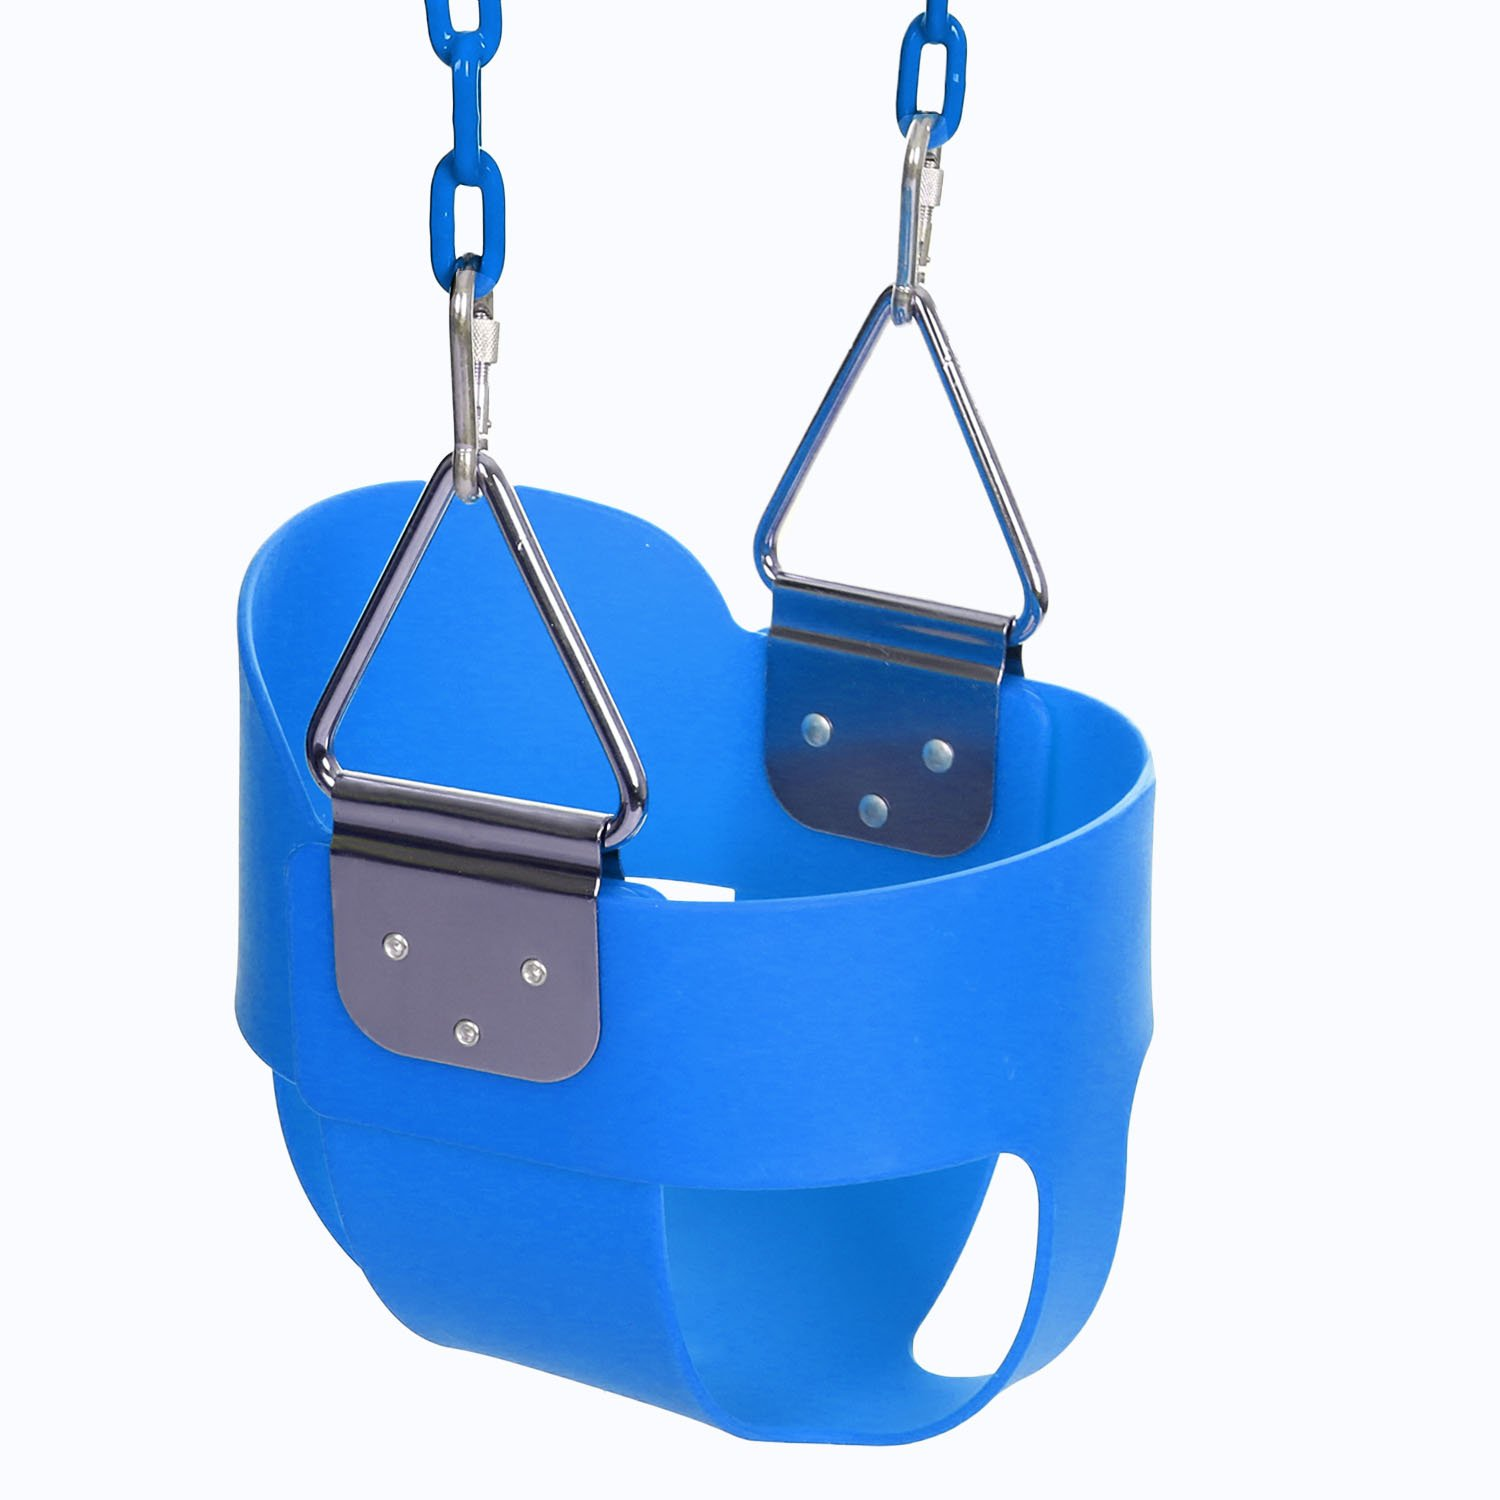 Funmily High Back Full Bucket Toddler Swing Seat with 60 inch Plastic Coated Swing Chains & 2 Snap Hooks Fully Assembled - Swing Set (Blue) by Funmily